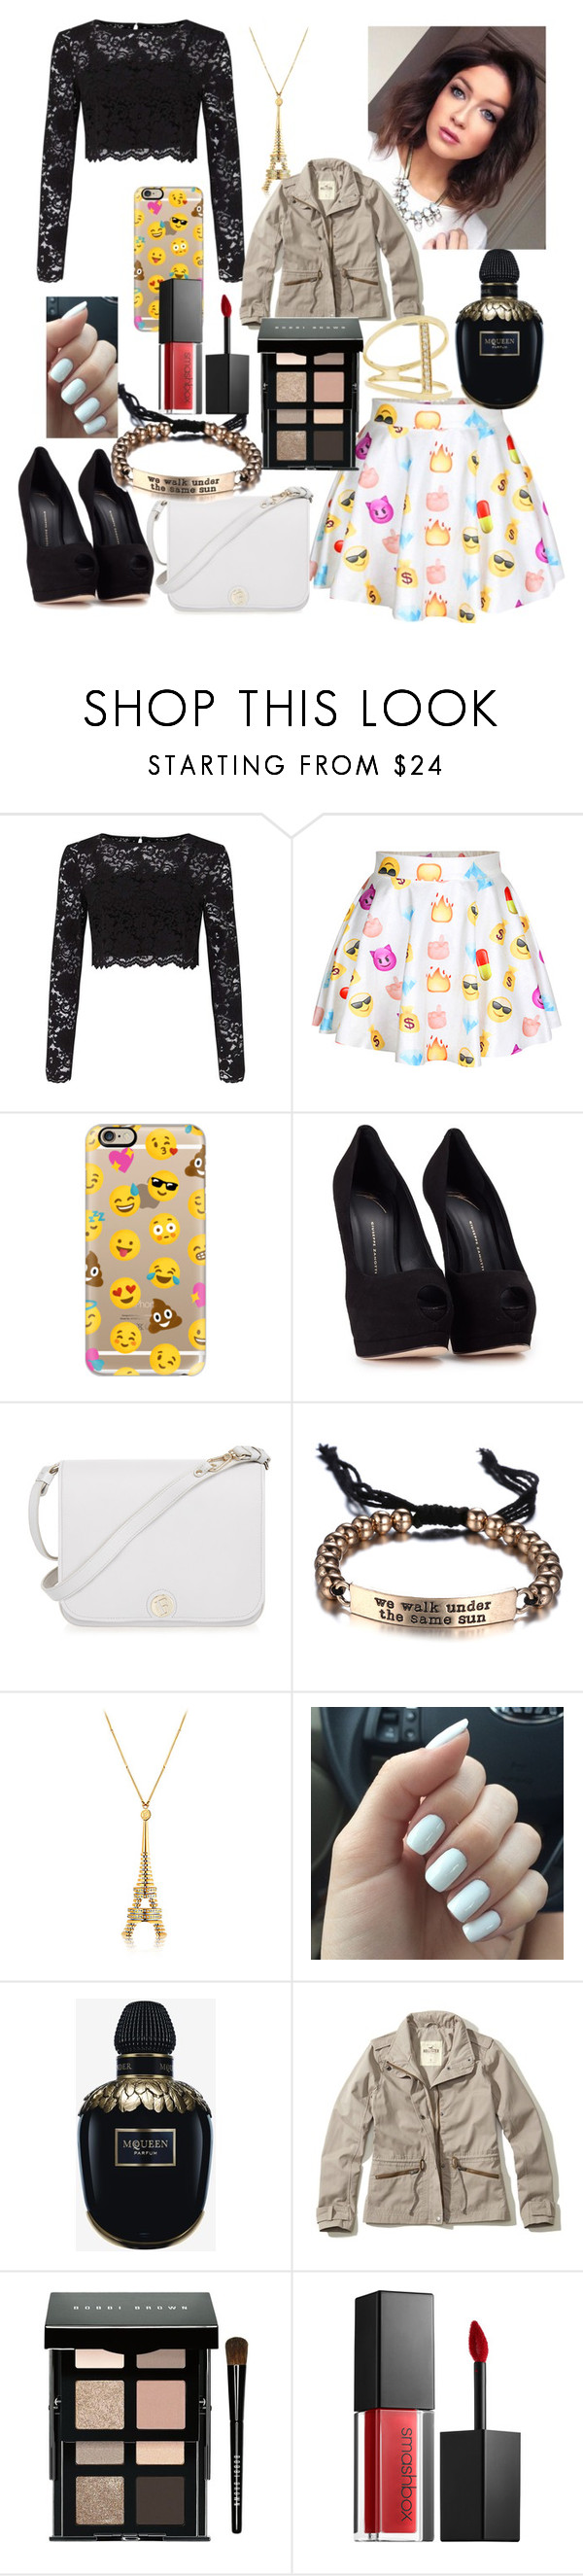 """Emoji Princess"" by stilinski-obrien24 ❤ liked on Polyvore featuring Miss Selfridge, Casetify, Giuseppe Zanotti, Furla, Alexander McQueen, Hollister Co., Bobbi Brown Cosmetics, Smashbox and Sydney Evan"